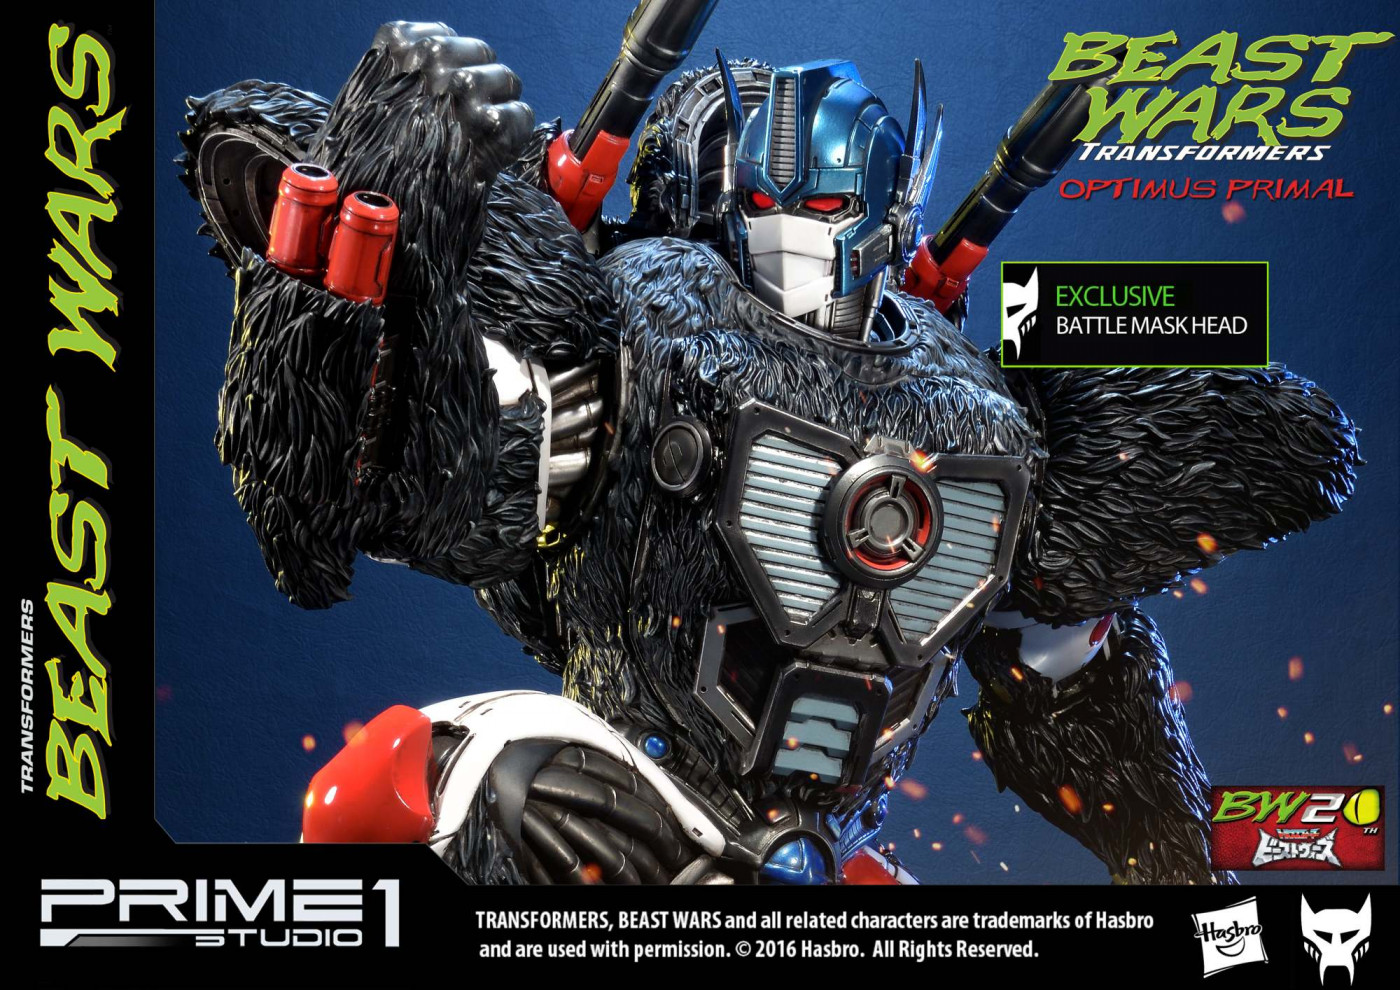 Premium Masterline Beast Wars: Transformers Optimus Primal EX Version